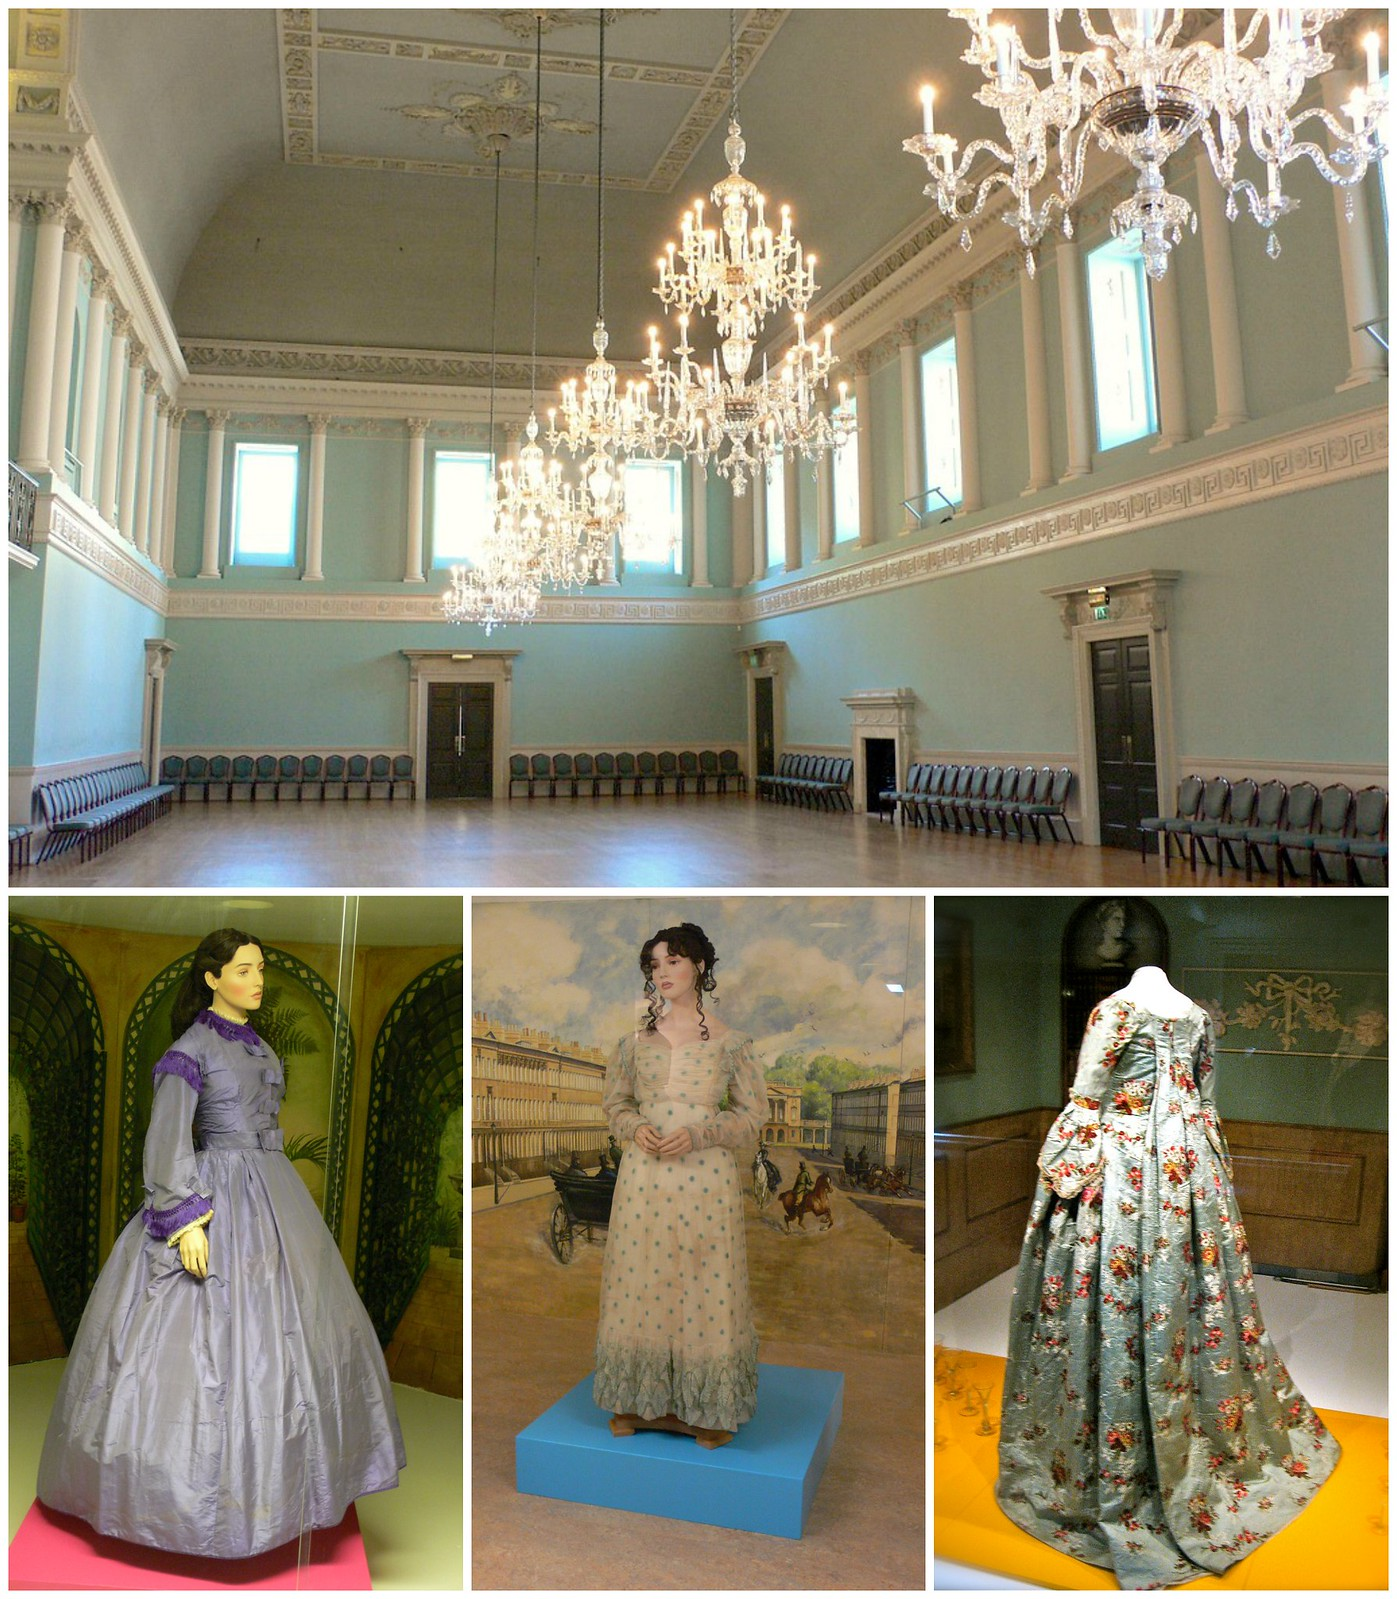 Assembly Rooms and Fashion Museum. Credit: Heather Cowper, flickr; Lisby, flickr